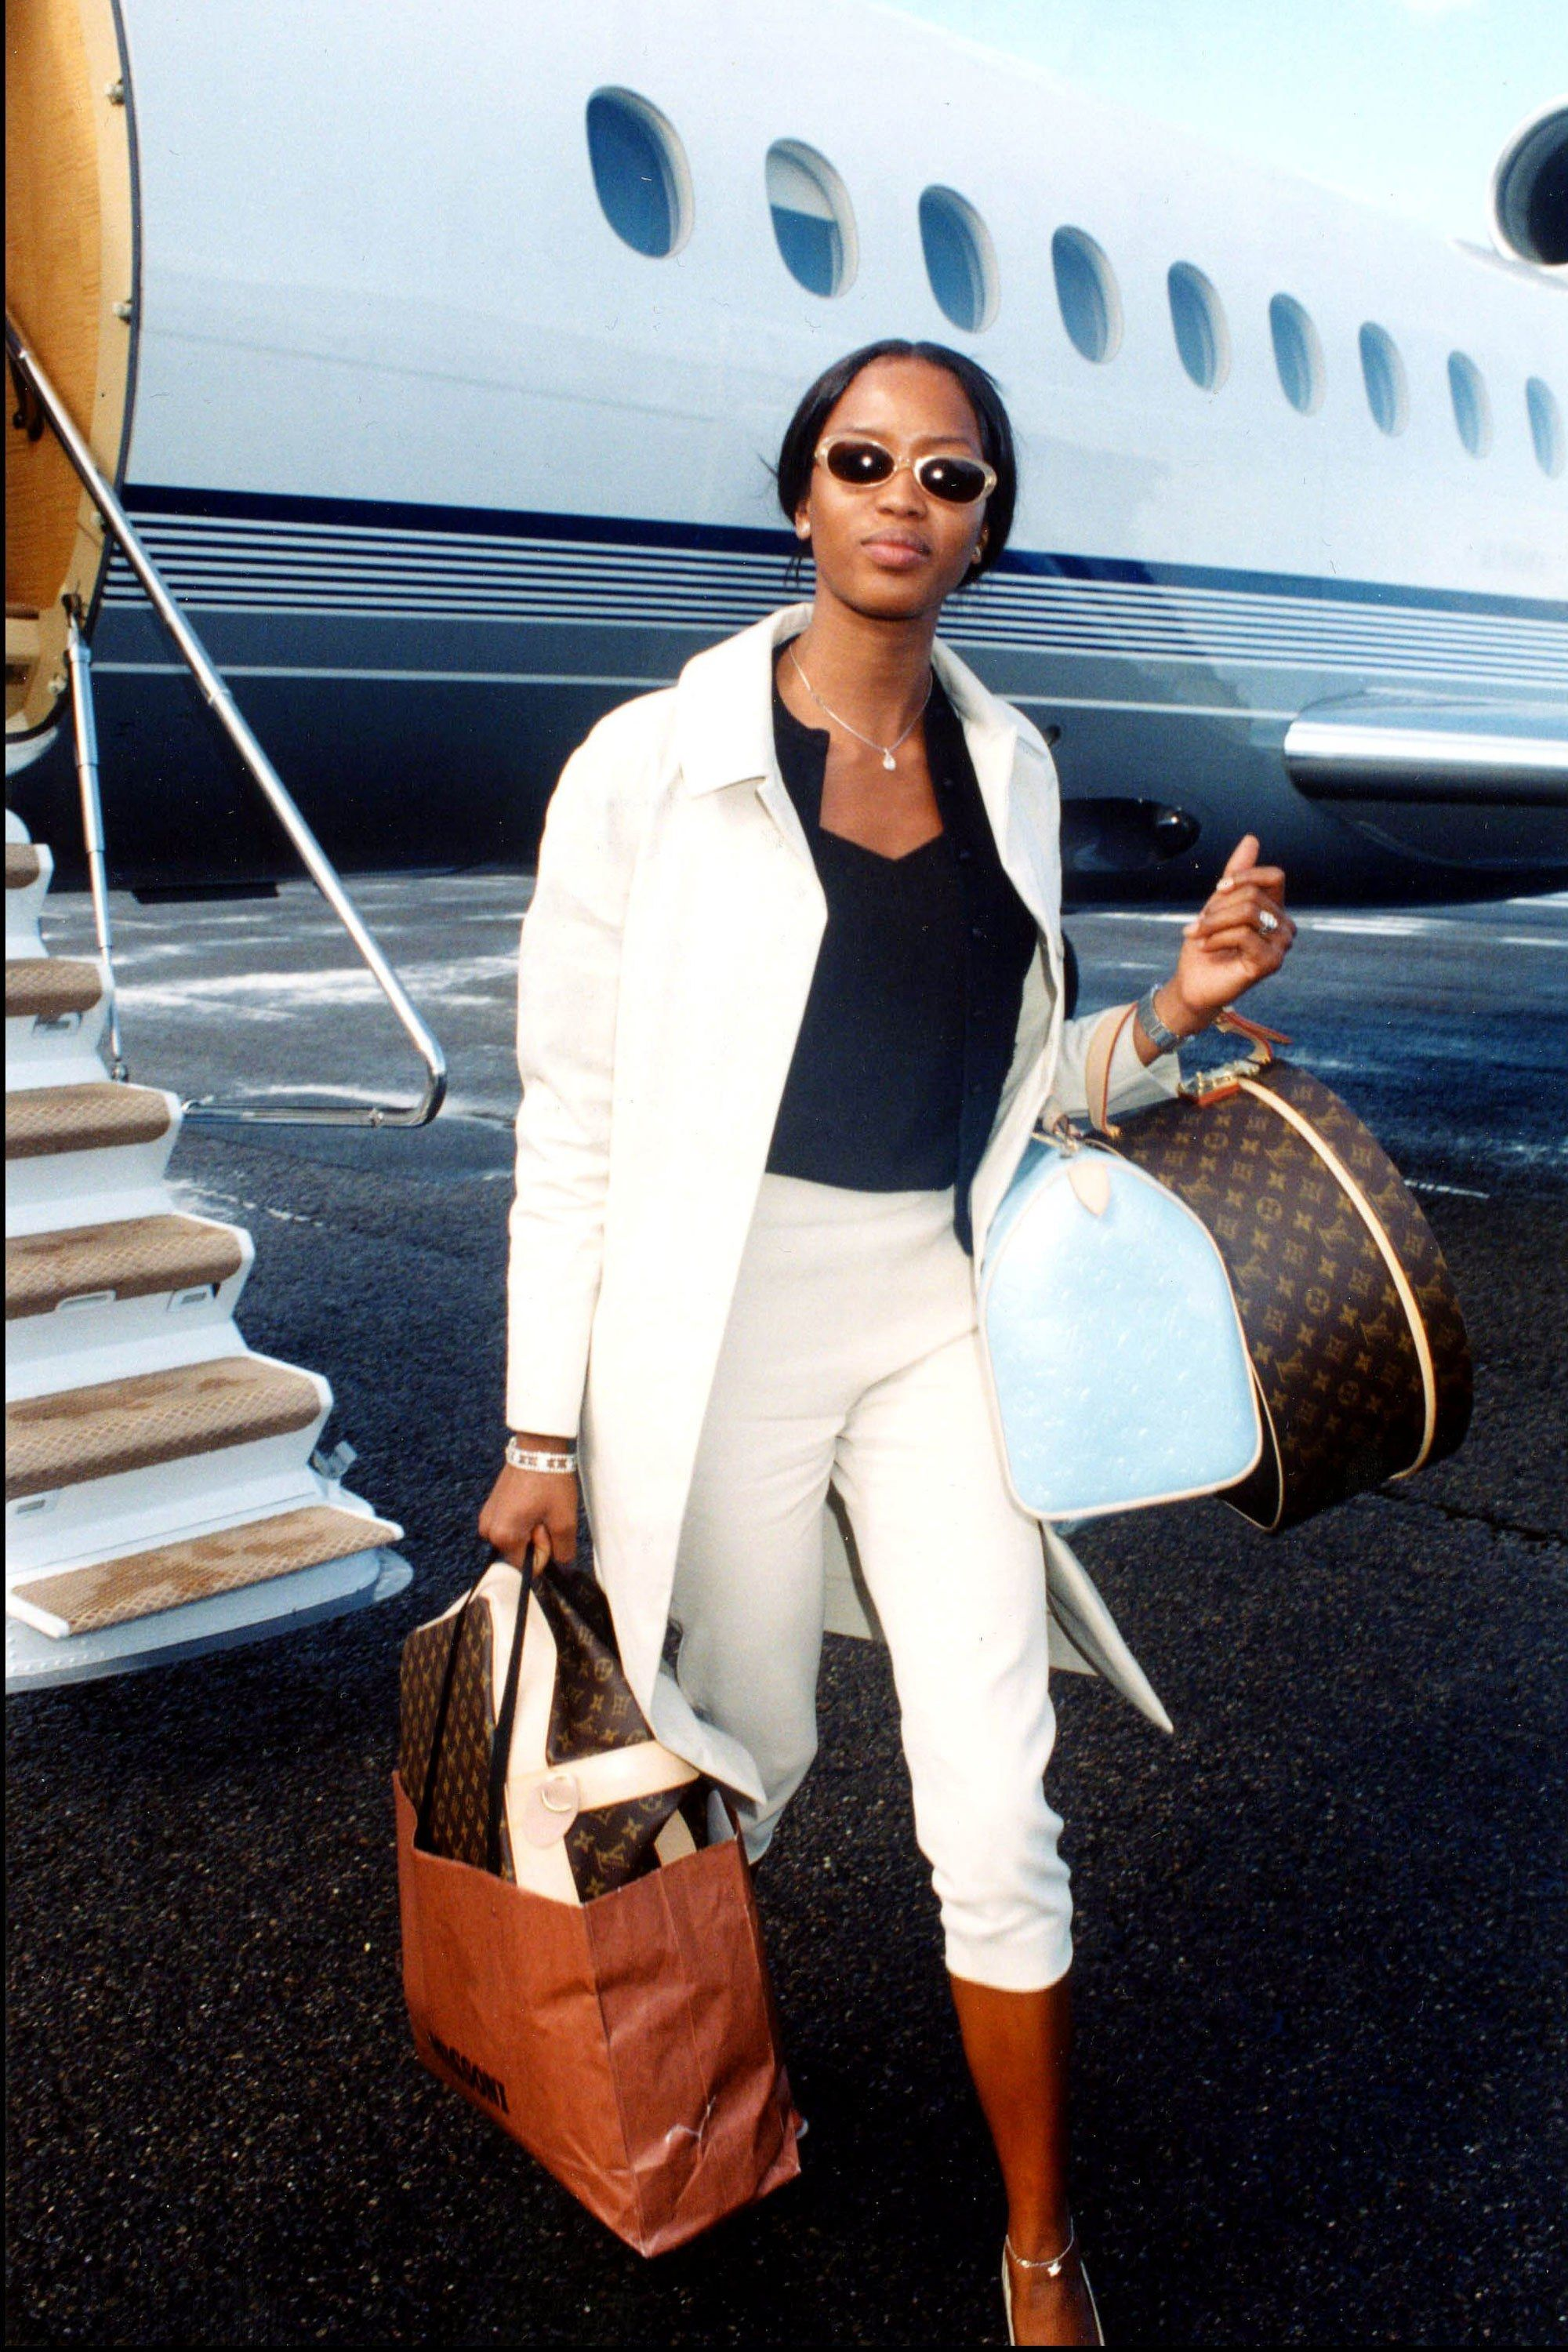 90s Airport Fashion Supermodels and Actresses Kate Moss, Gwyneth Paltrow,  Naomi Campbell 87e7b911516e